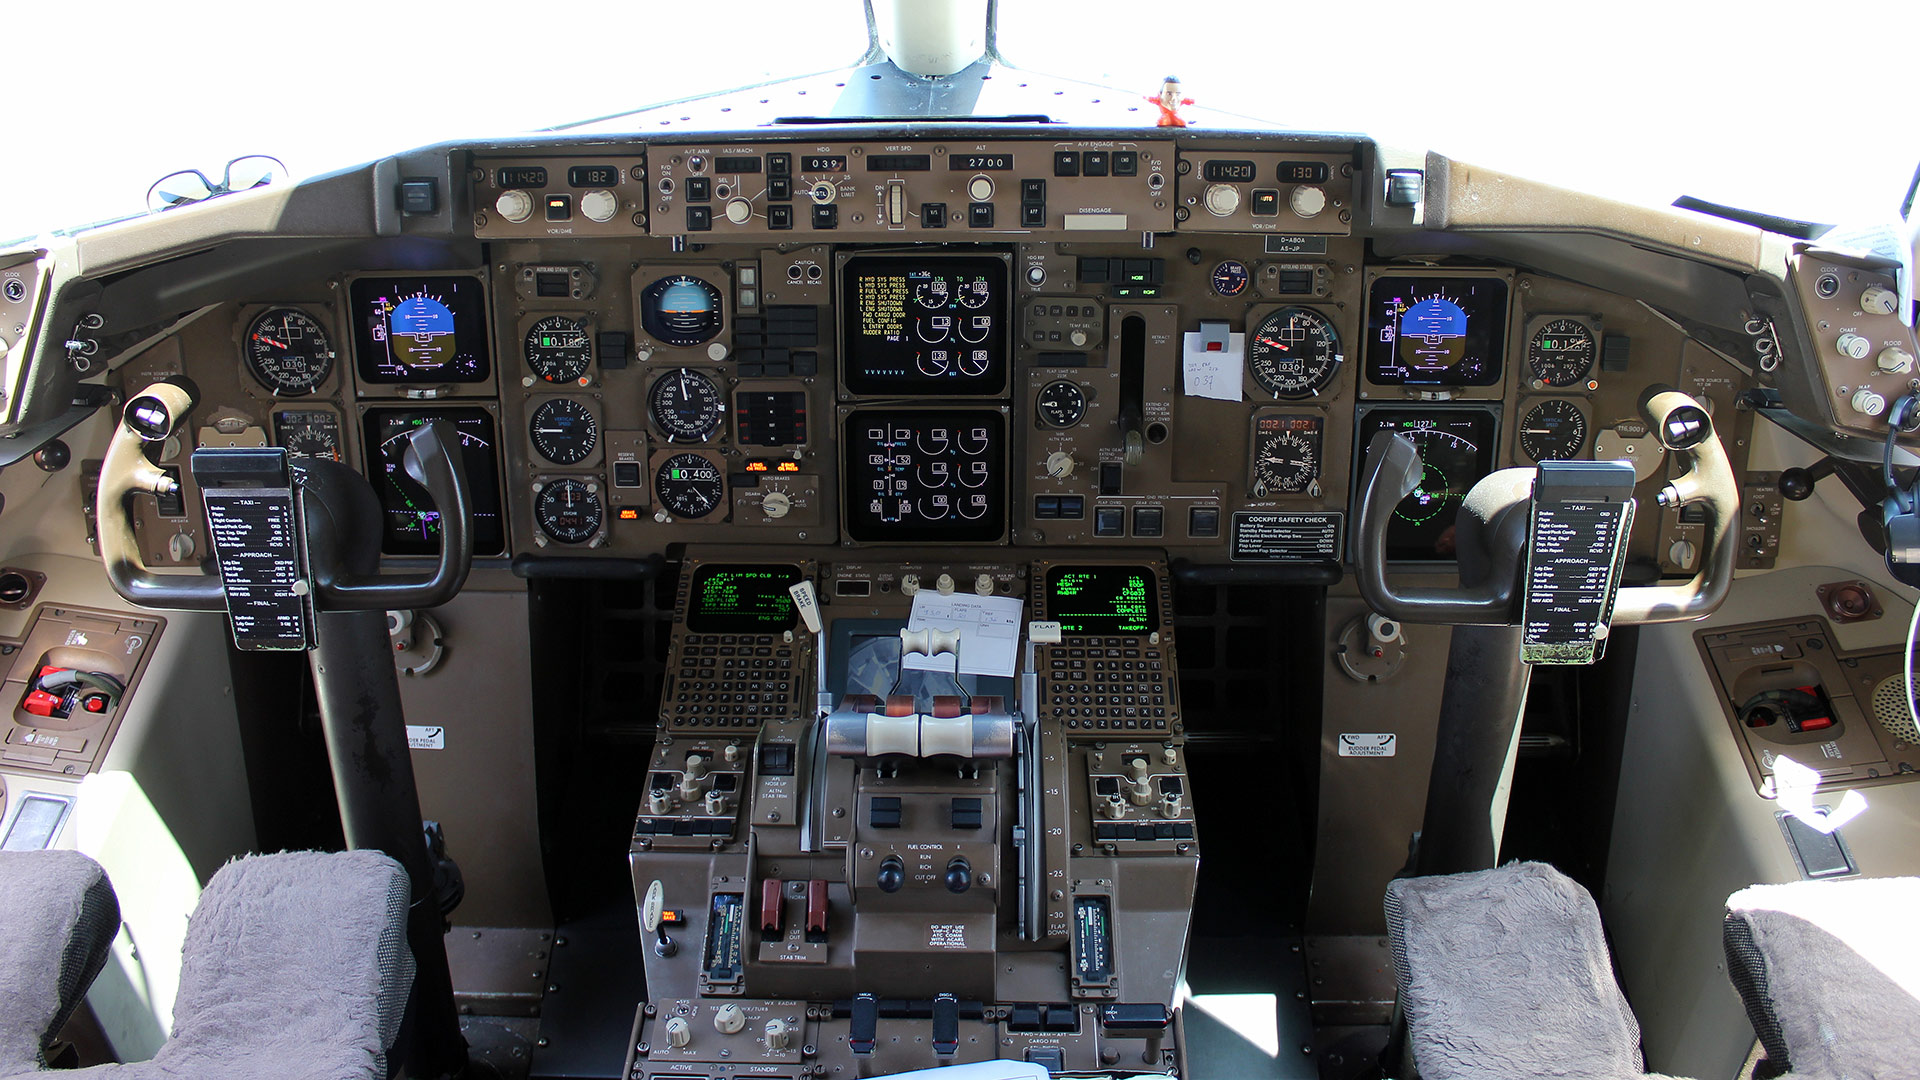 The cockpit of a Boeing 757-300.